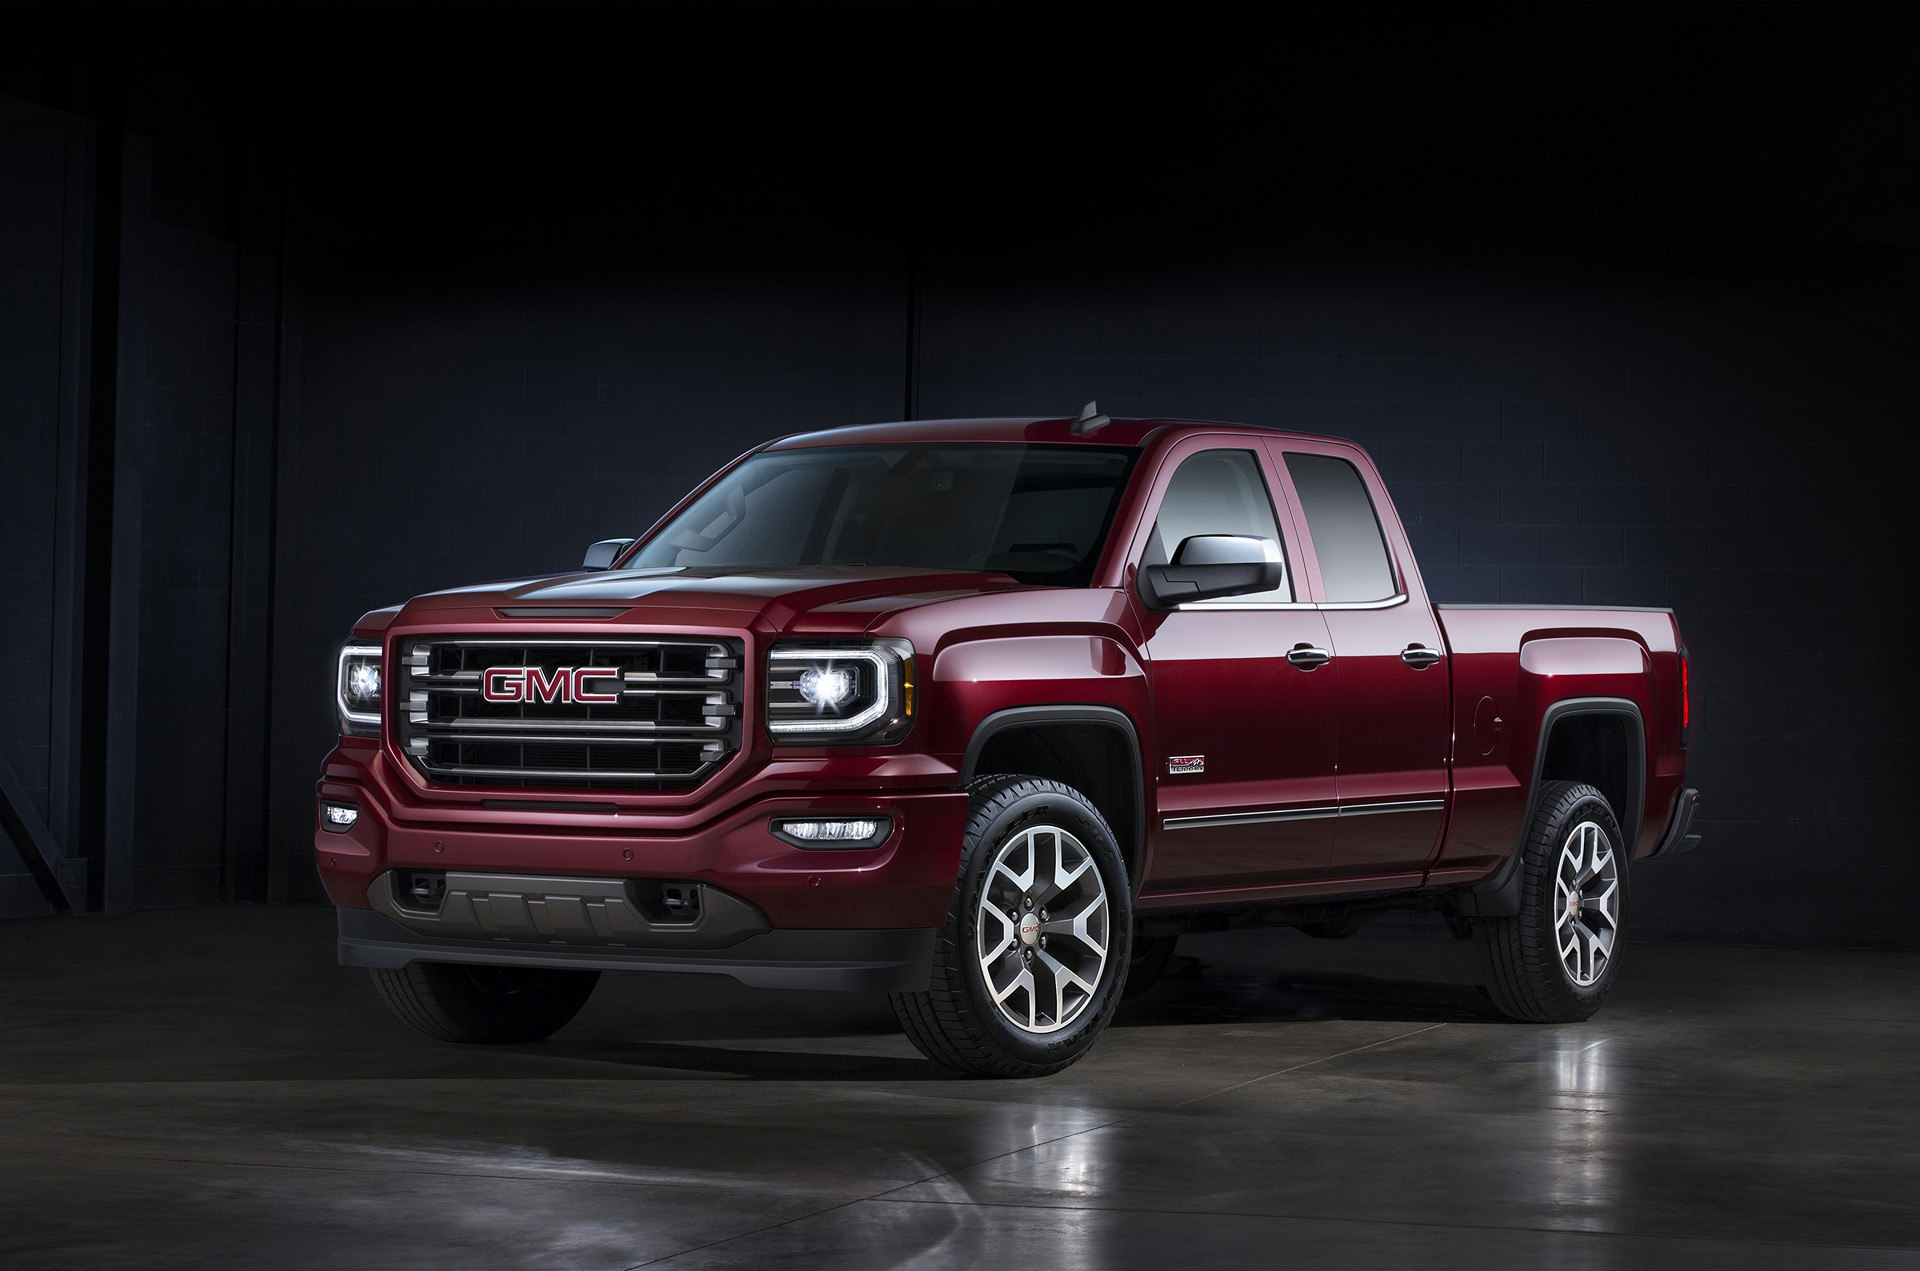 2016 gmc sierra sierra denali review carrrs auto portal. Black Bedroom Furniture Sets. Home Design Ideas